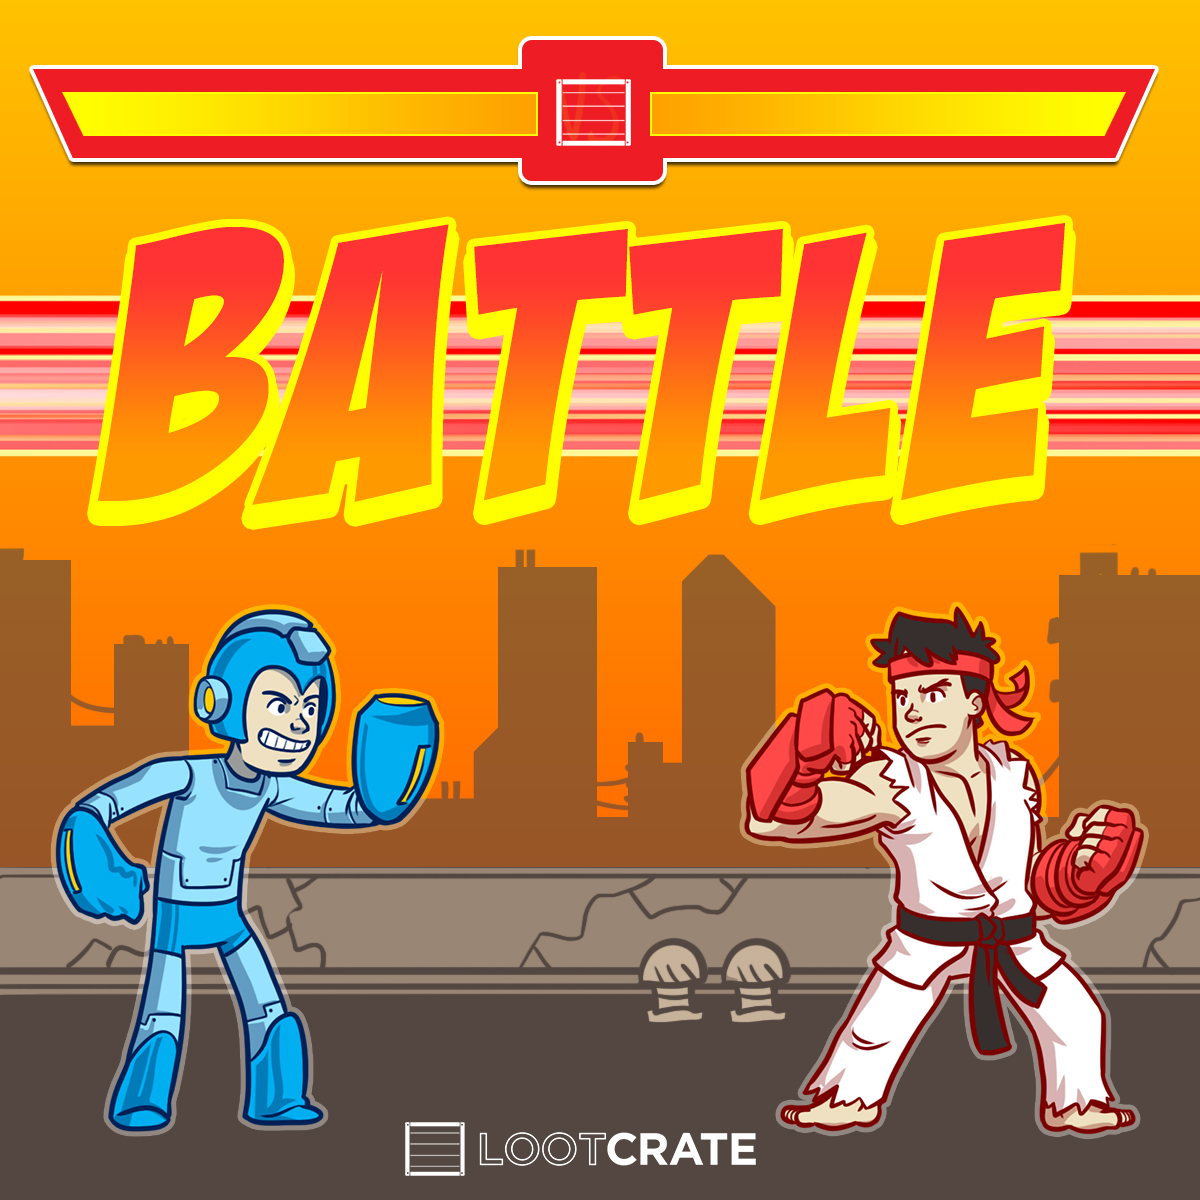 November 2014 Loot Crate Theme Reveal - Battle